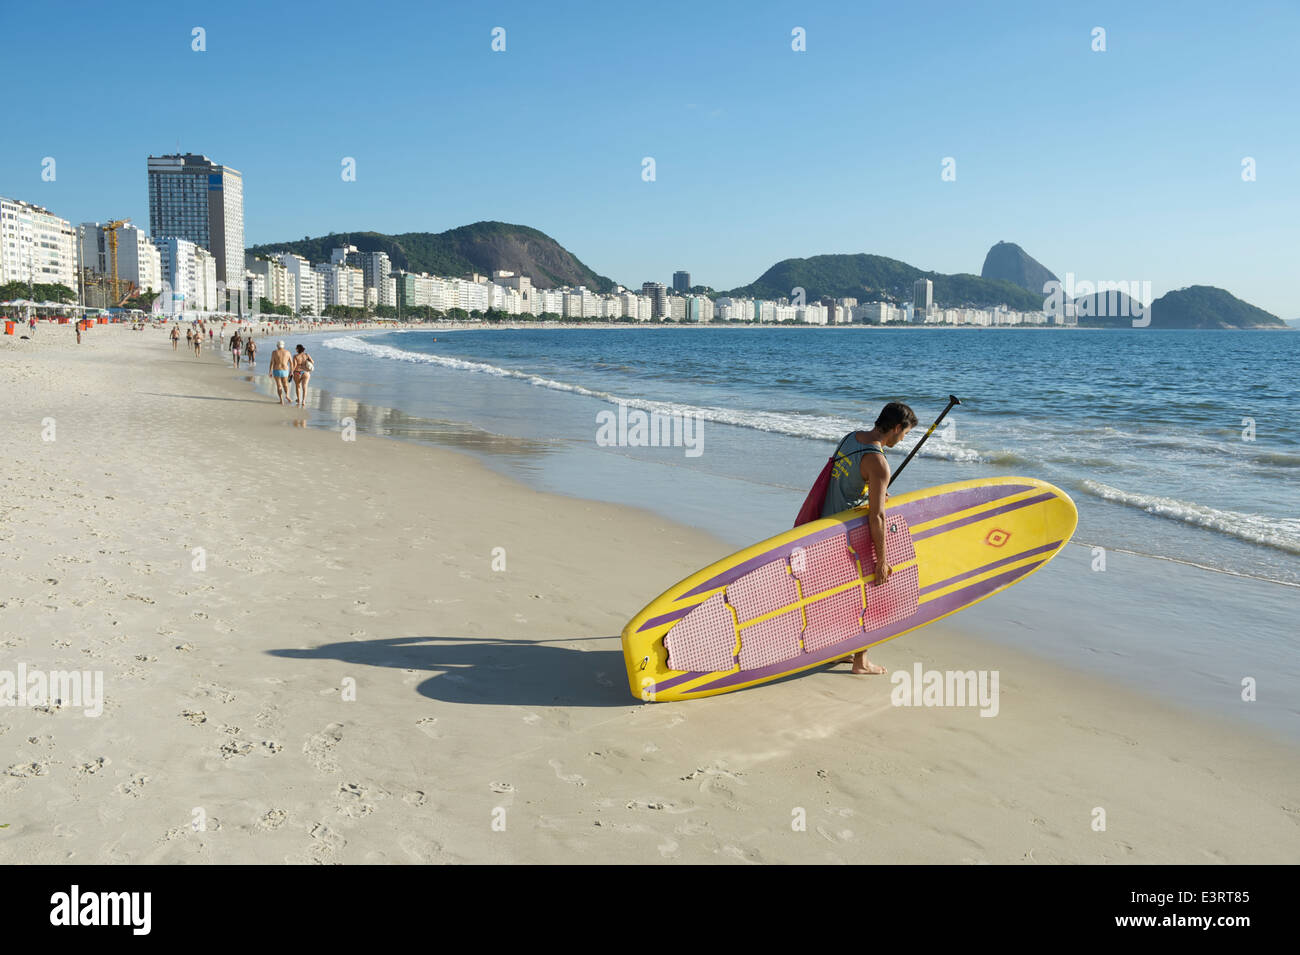 RIO DE JANEIRO, BRAZIL - JANUARY 31, 2014: Brazilian man carries a stand up paddle longboard surfboard into the - Stock Image